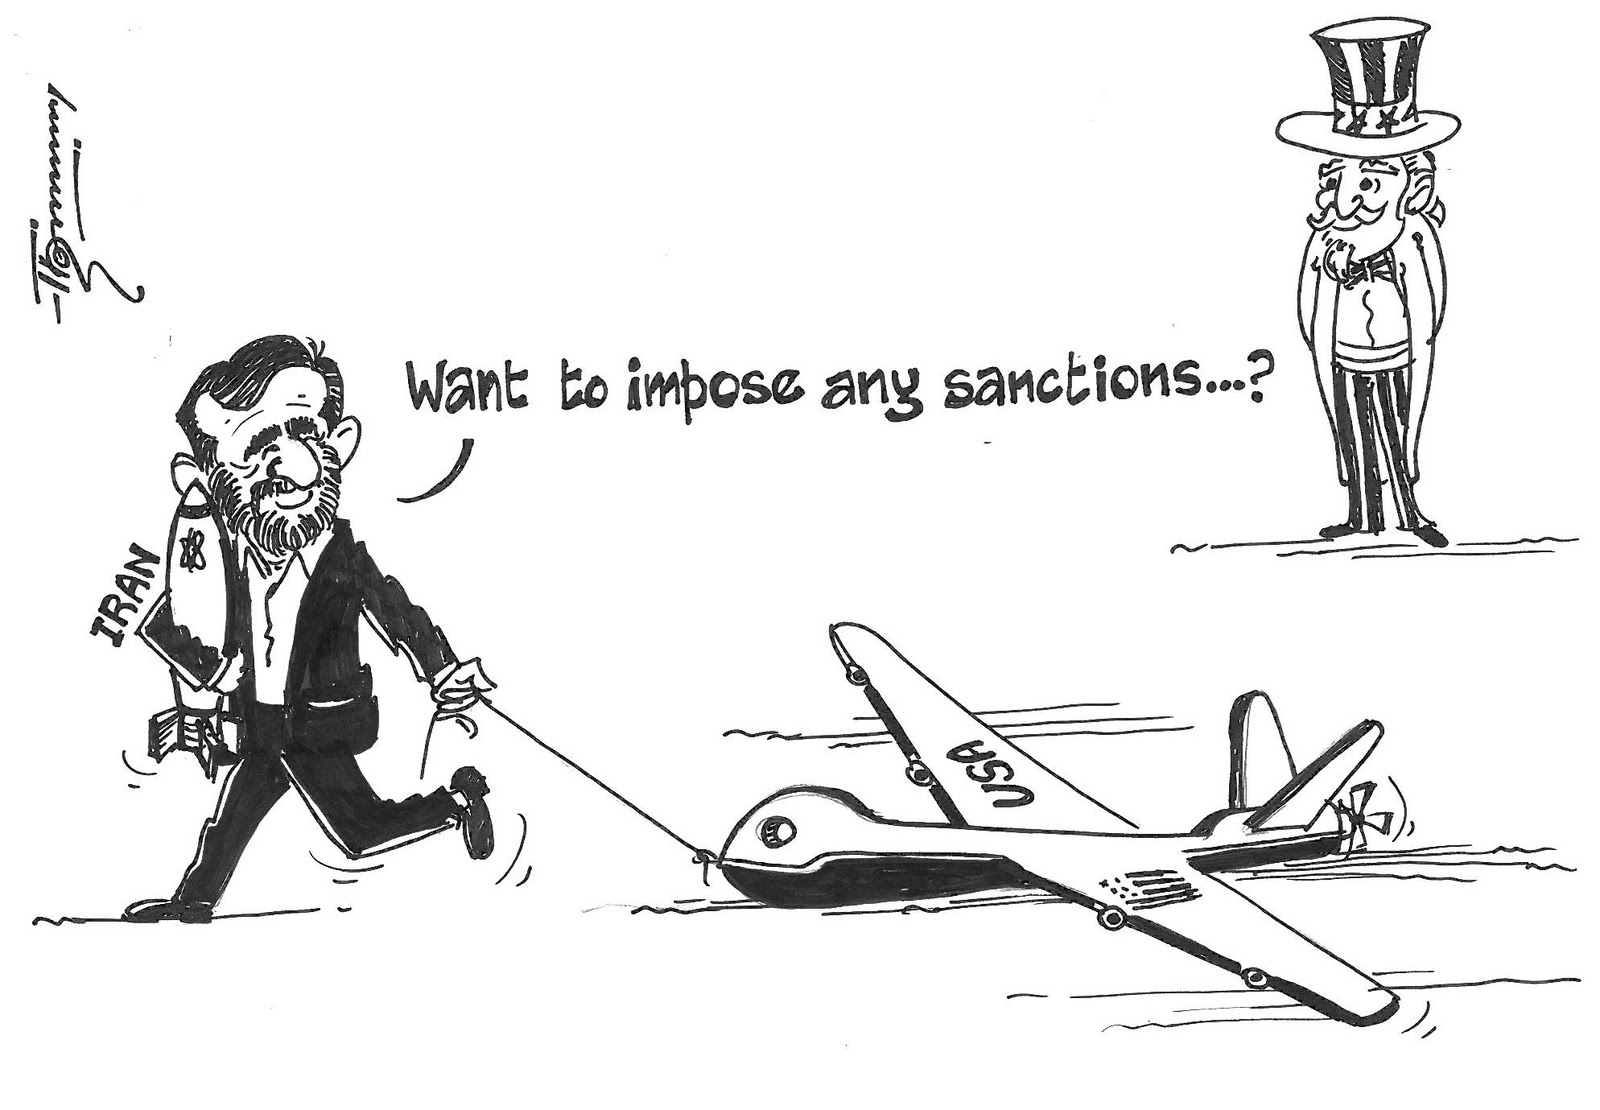 Drawn Opinions The Drone In Iran